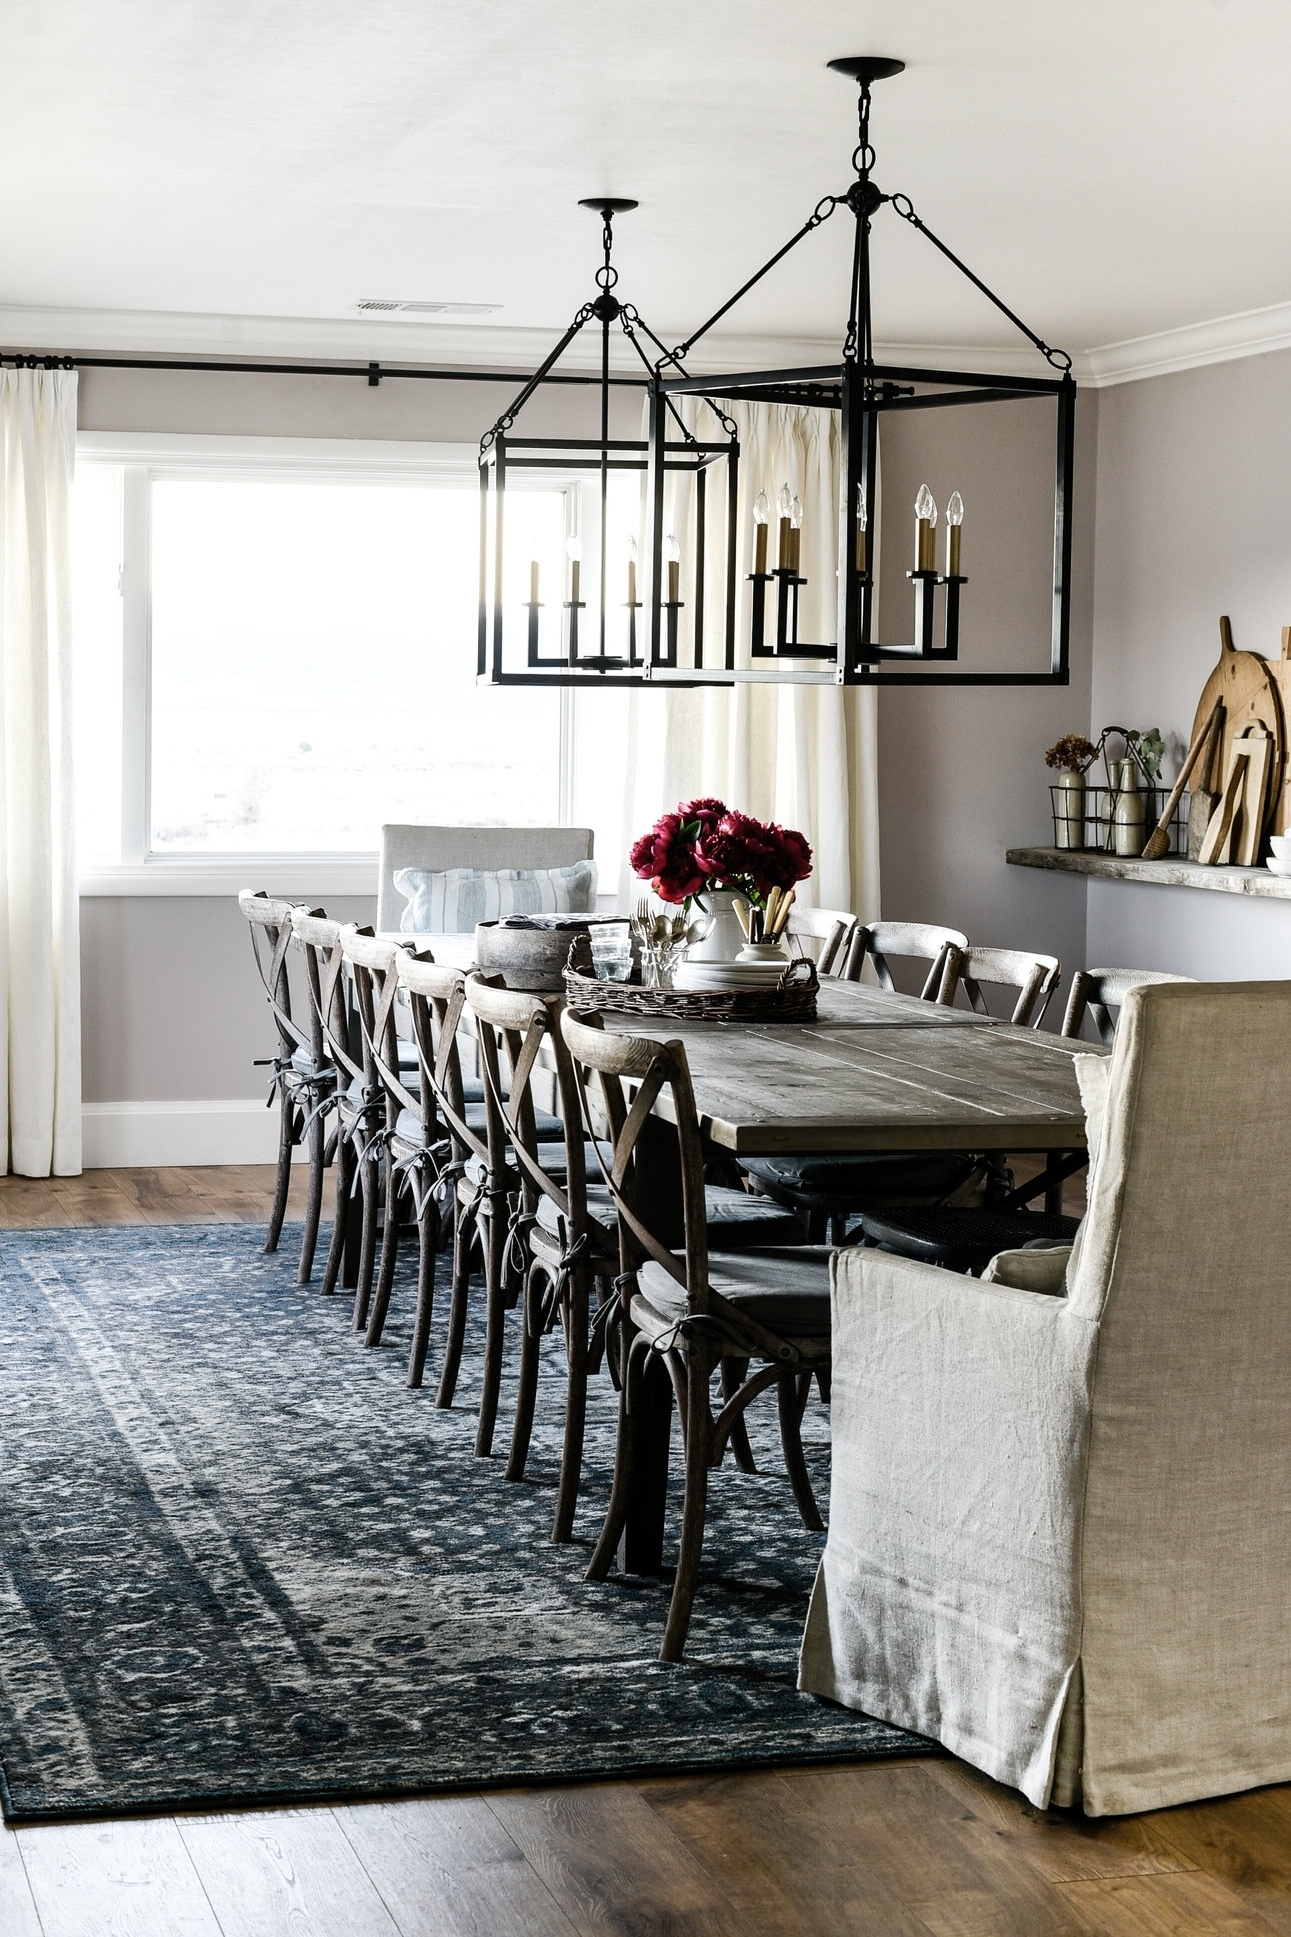 Dining Room - The dining room boasts pink walls with pops of blue and lots of vintage farmhouse decor. The oversized lights add just the right amount of drama!